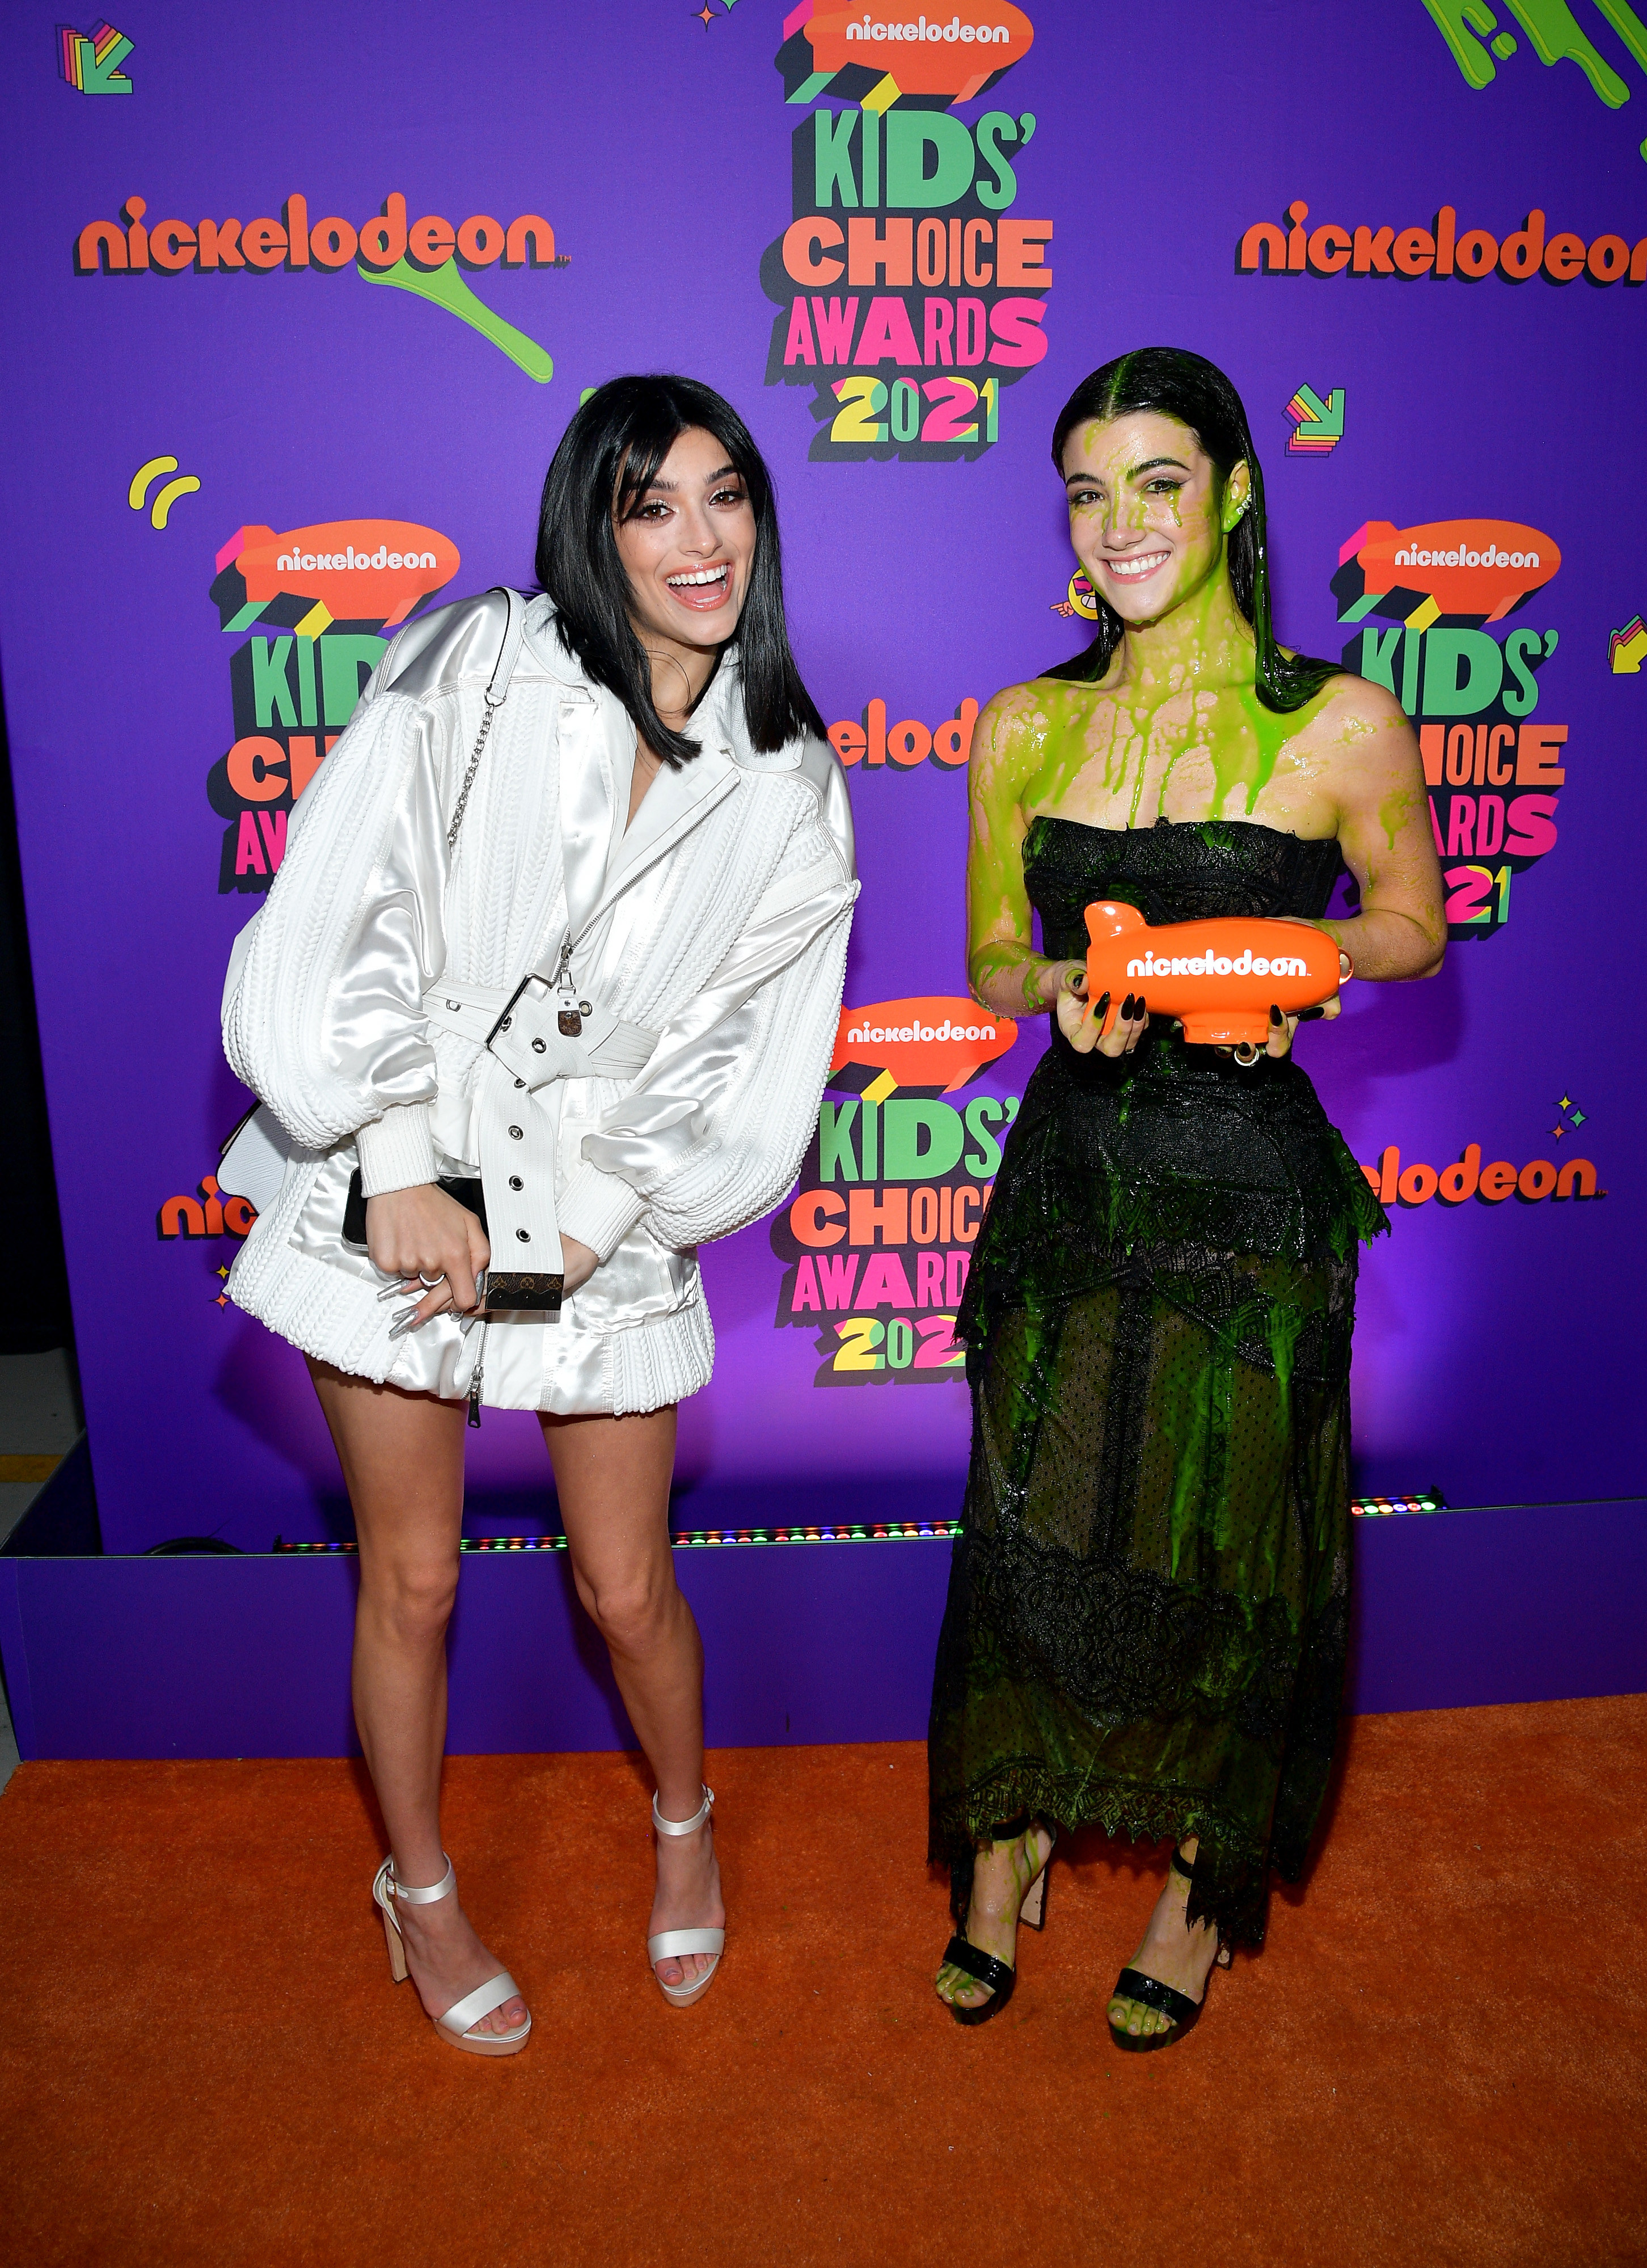 Dixie posing next to Charli after Charli was slimed